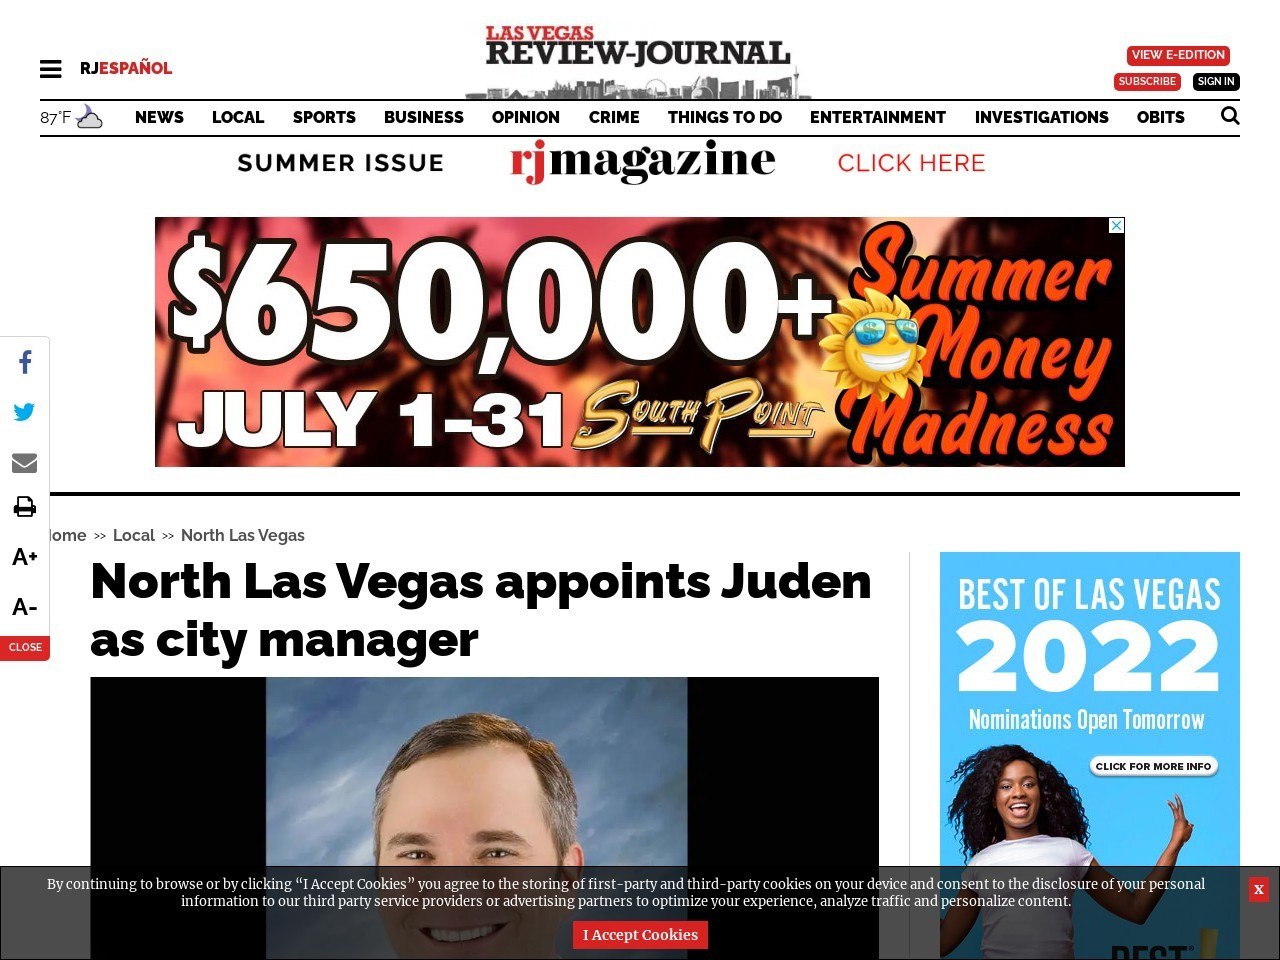 North Las Vegas appoints Juden as city manager